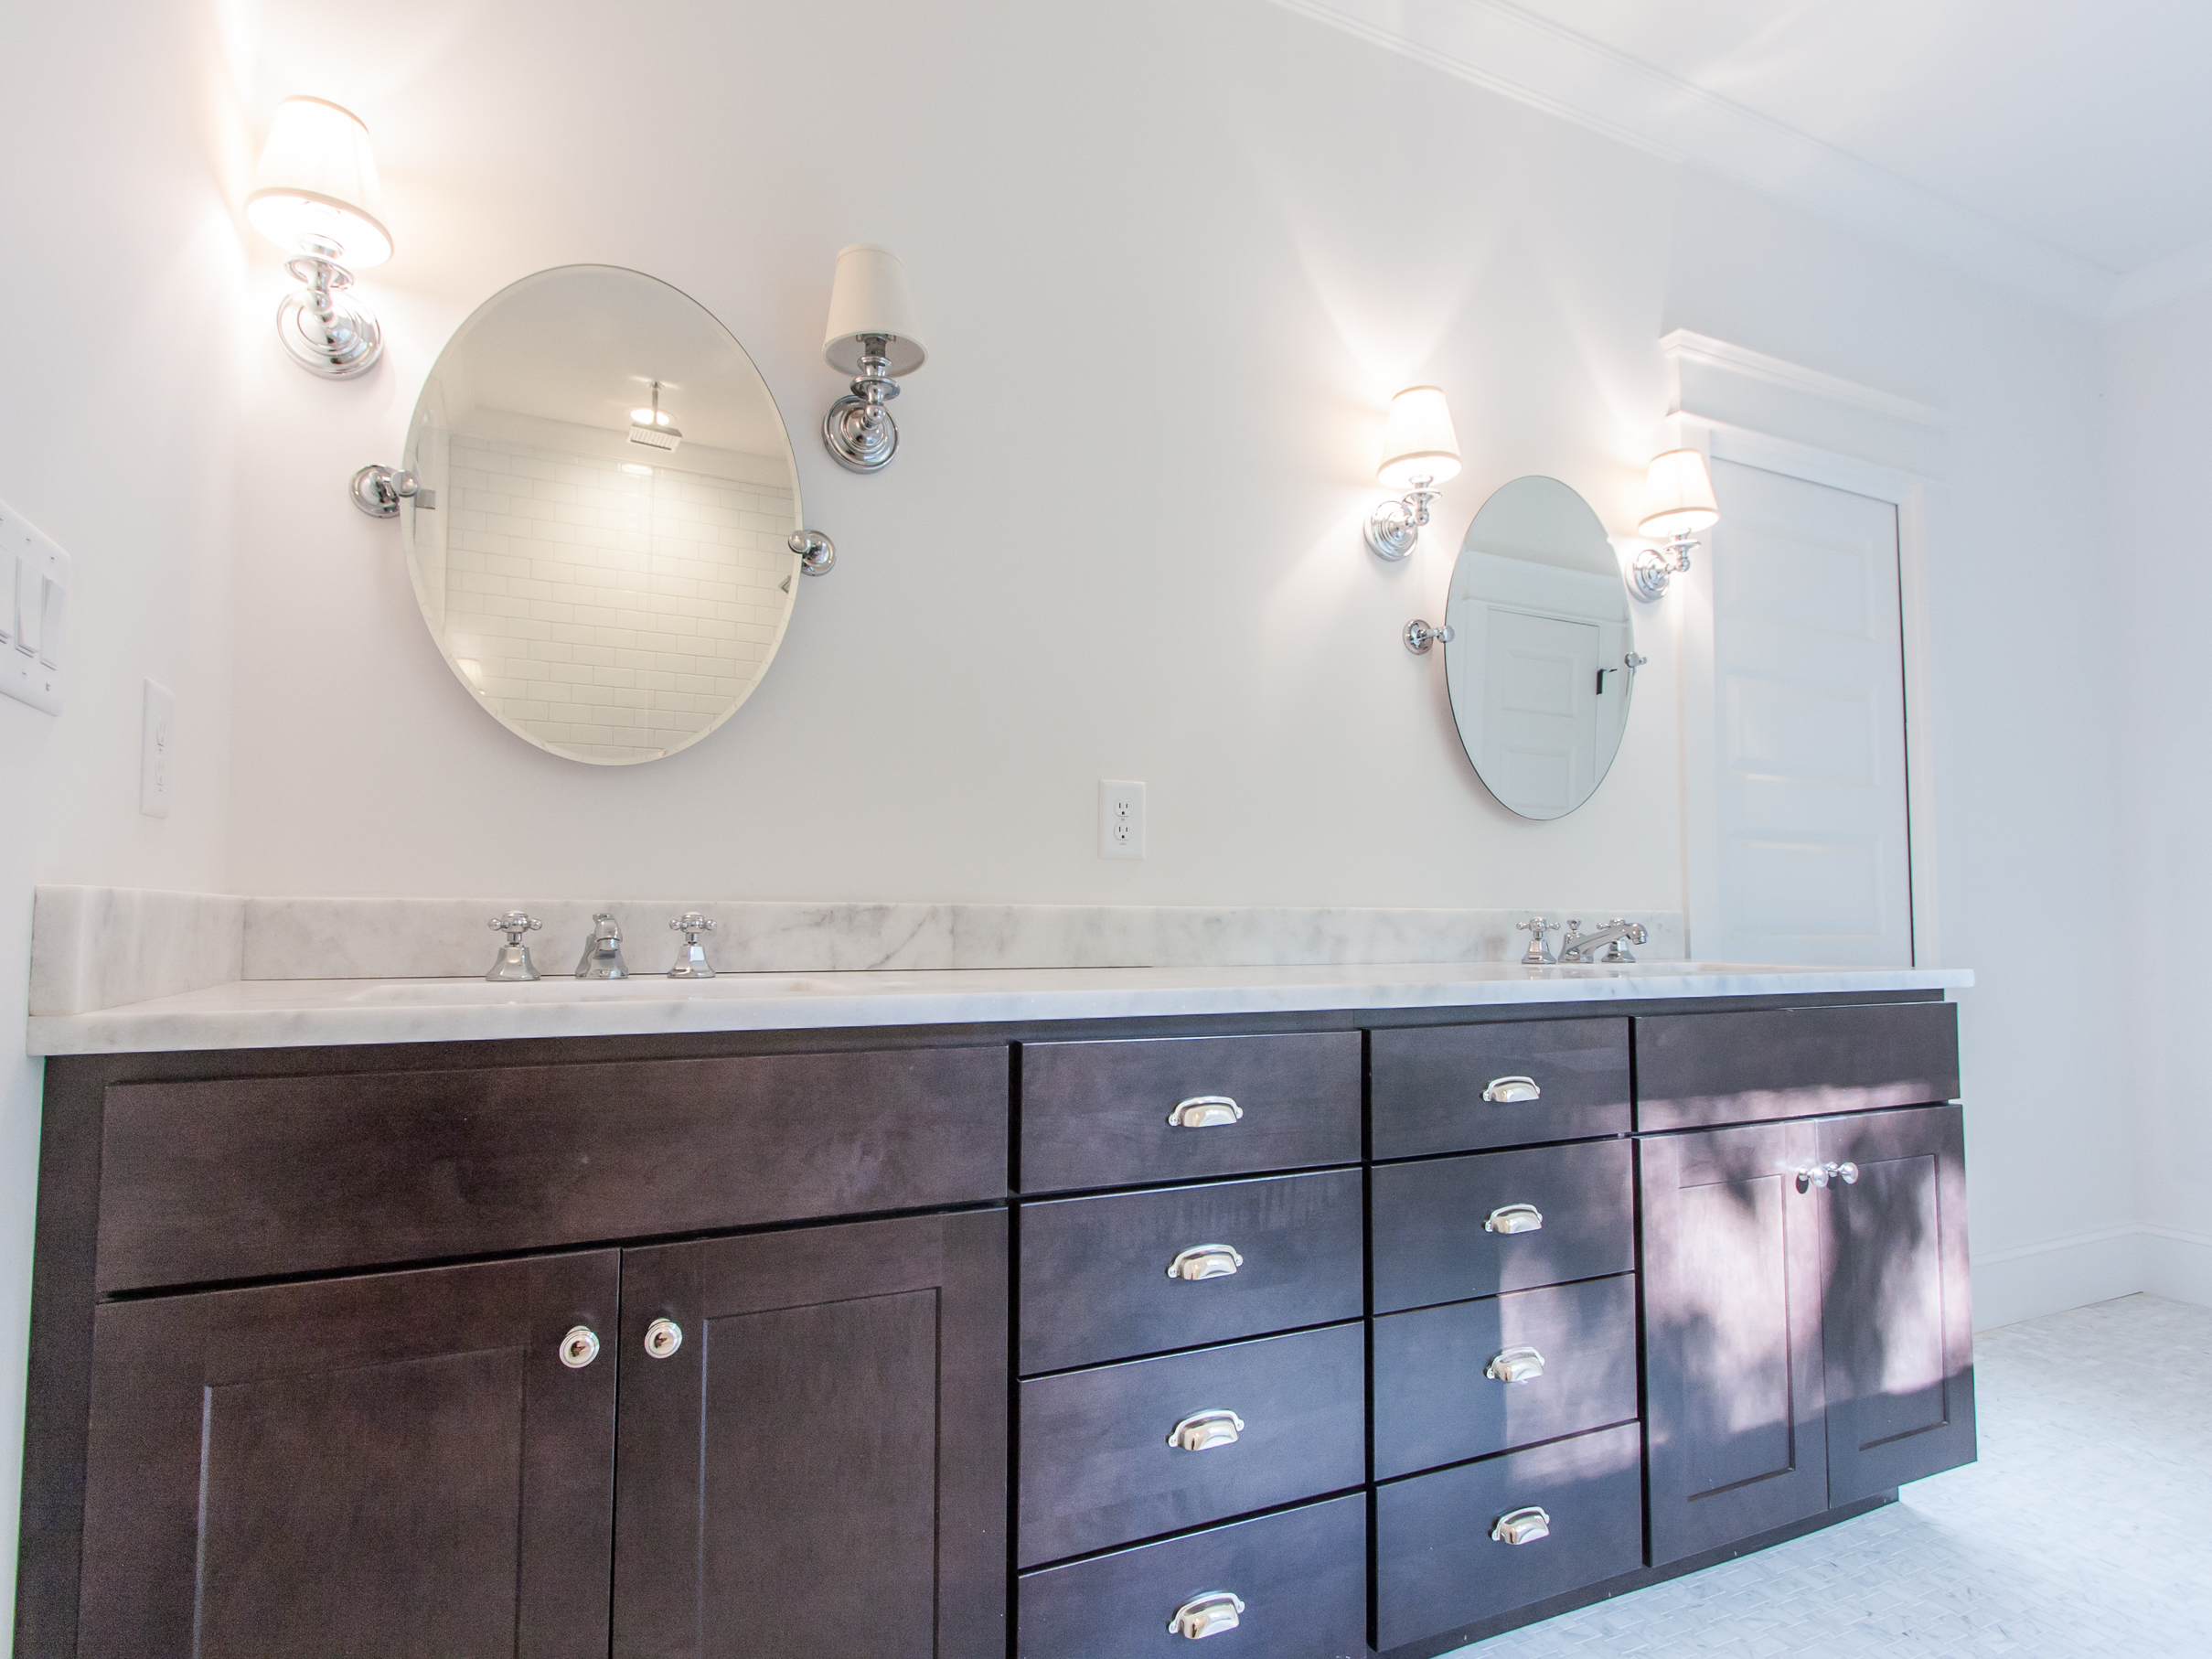 116 5th Ave Master Bath Vanity.jpg